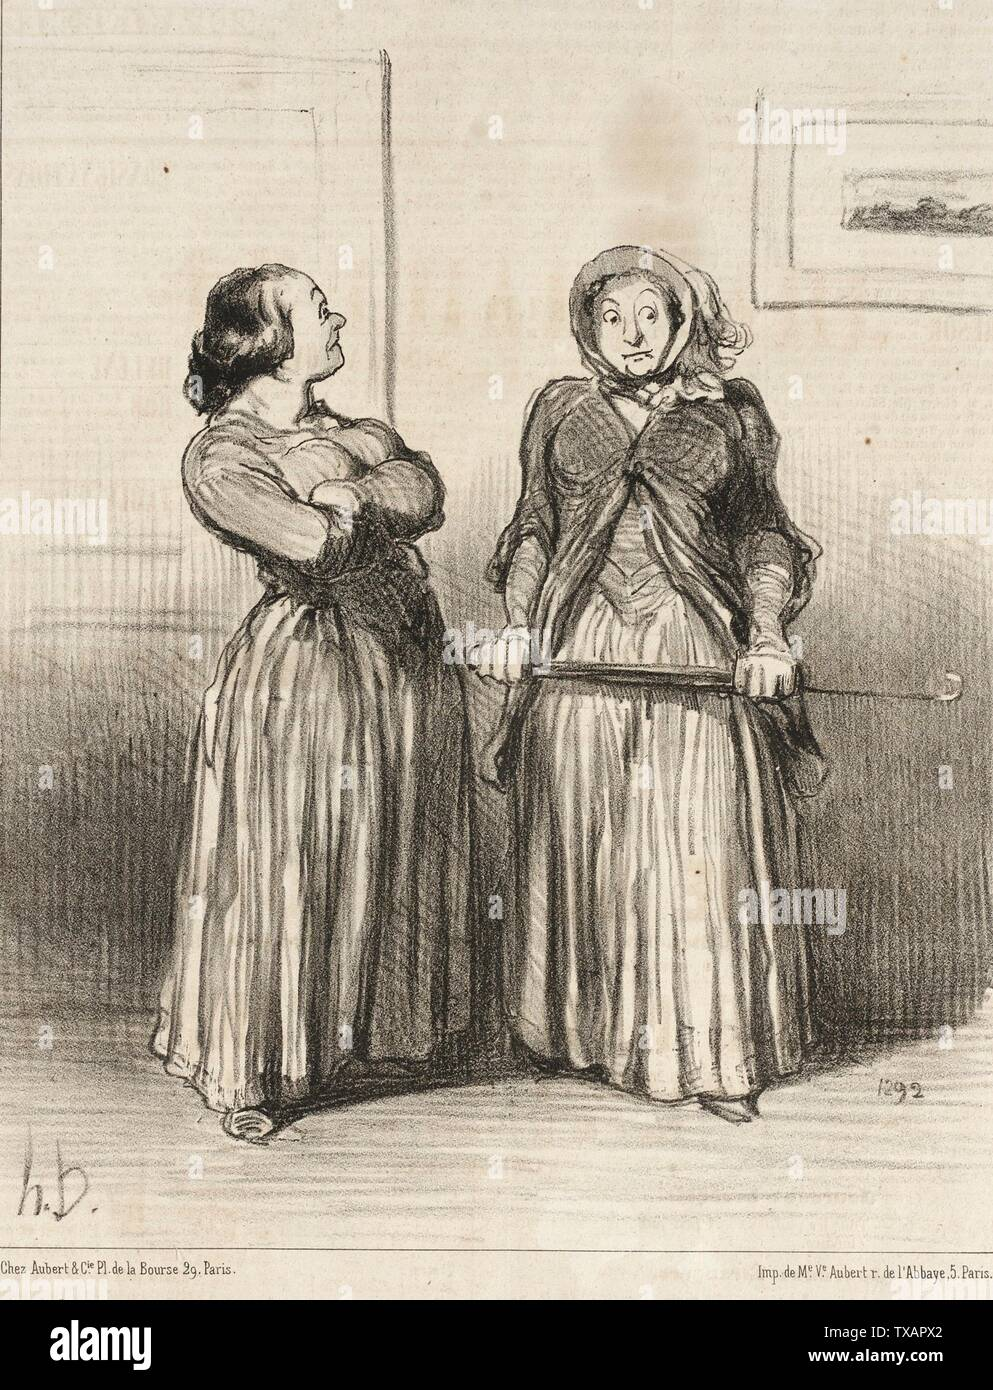 'On dit que les jolies femmes sont...demandées...; English:  France, 1851 Series: Actualités Periodical: Le Charivari, 2 October 1851 Prints; lithographs Lithograph Sheet: 9 5/8 x 7 3/4 in. (24.45 x 19.69 cm) Gift of Mrs. Florence Victor from The David and Florence Victor Collection (M.91.82.239) Prints and Drawings; 1851date QS:P571,+1851-00-00T00:00:00Z/9; ' - Stock Image